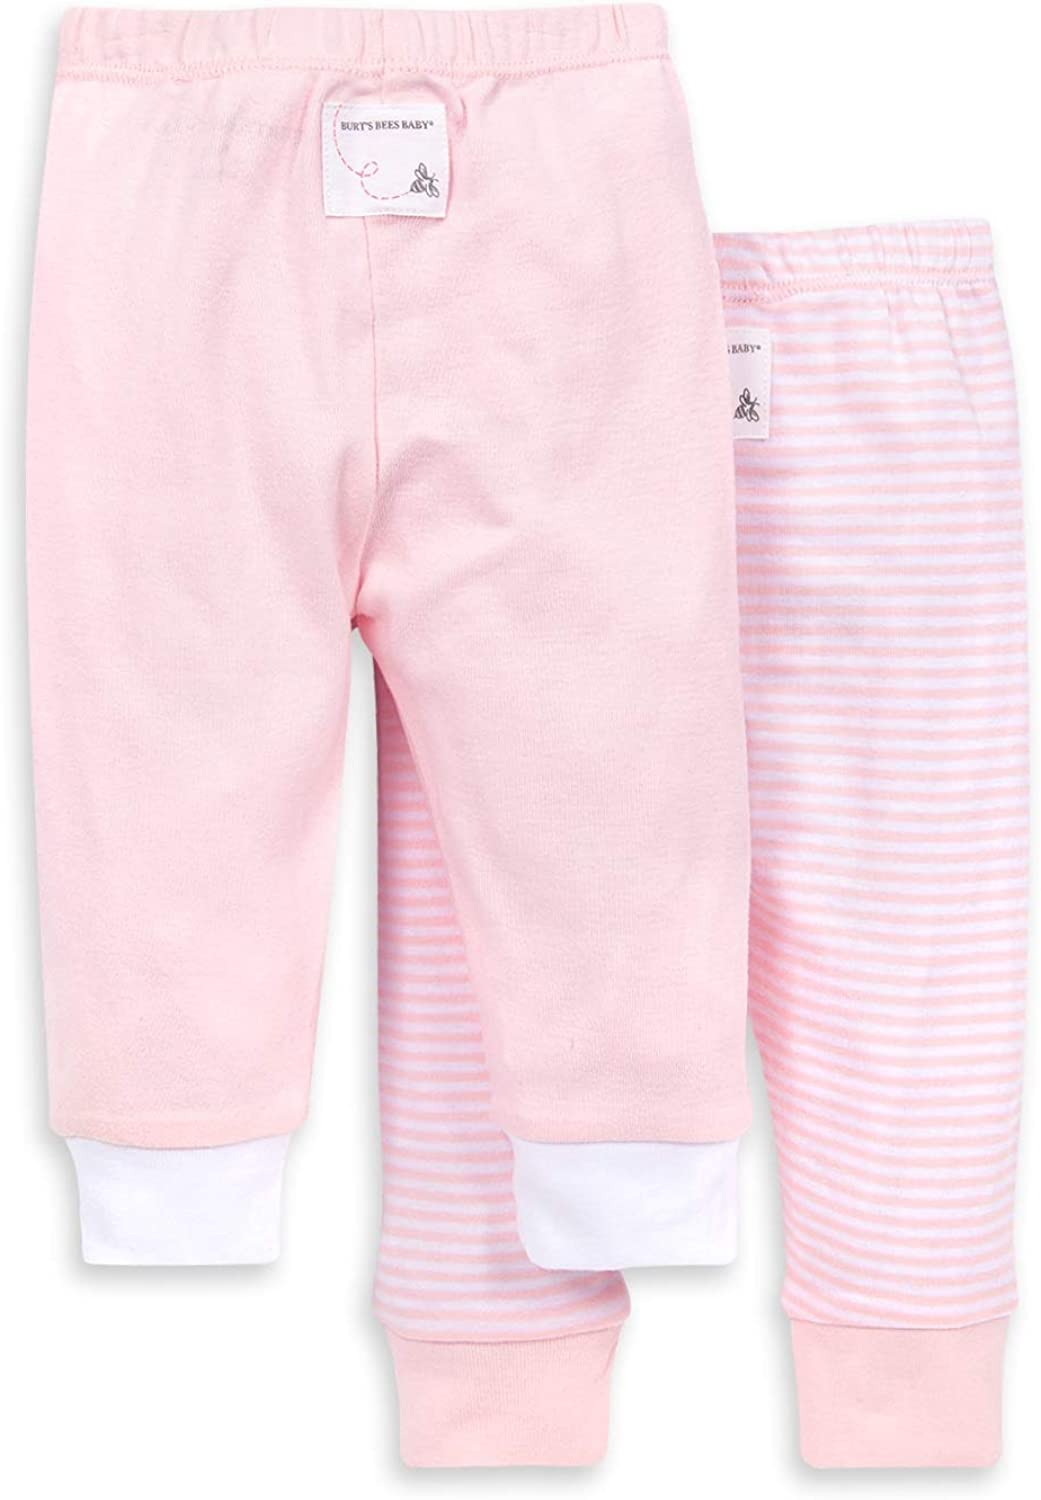 Burts Bees Baby Set of 2 Lightweight Knit Infant Bottoms Unisex Baby Pants 100/% Organic Cotton